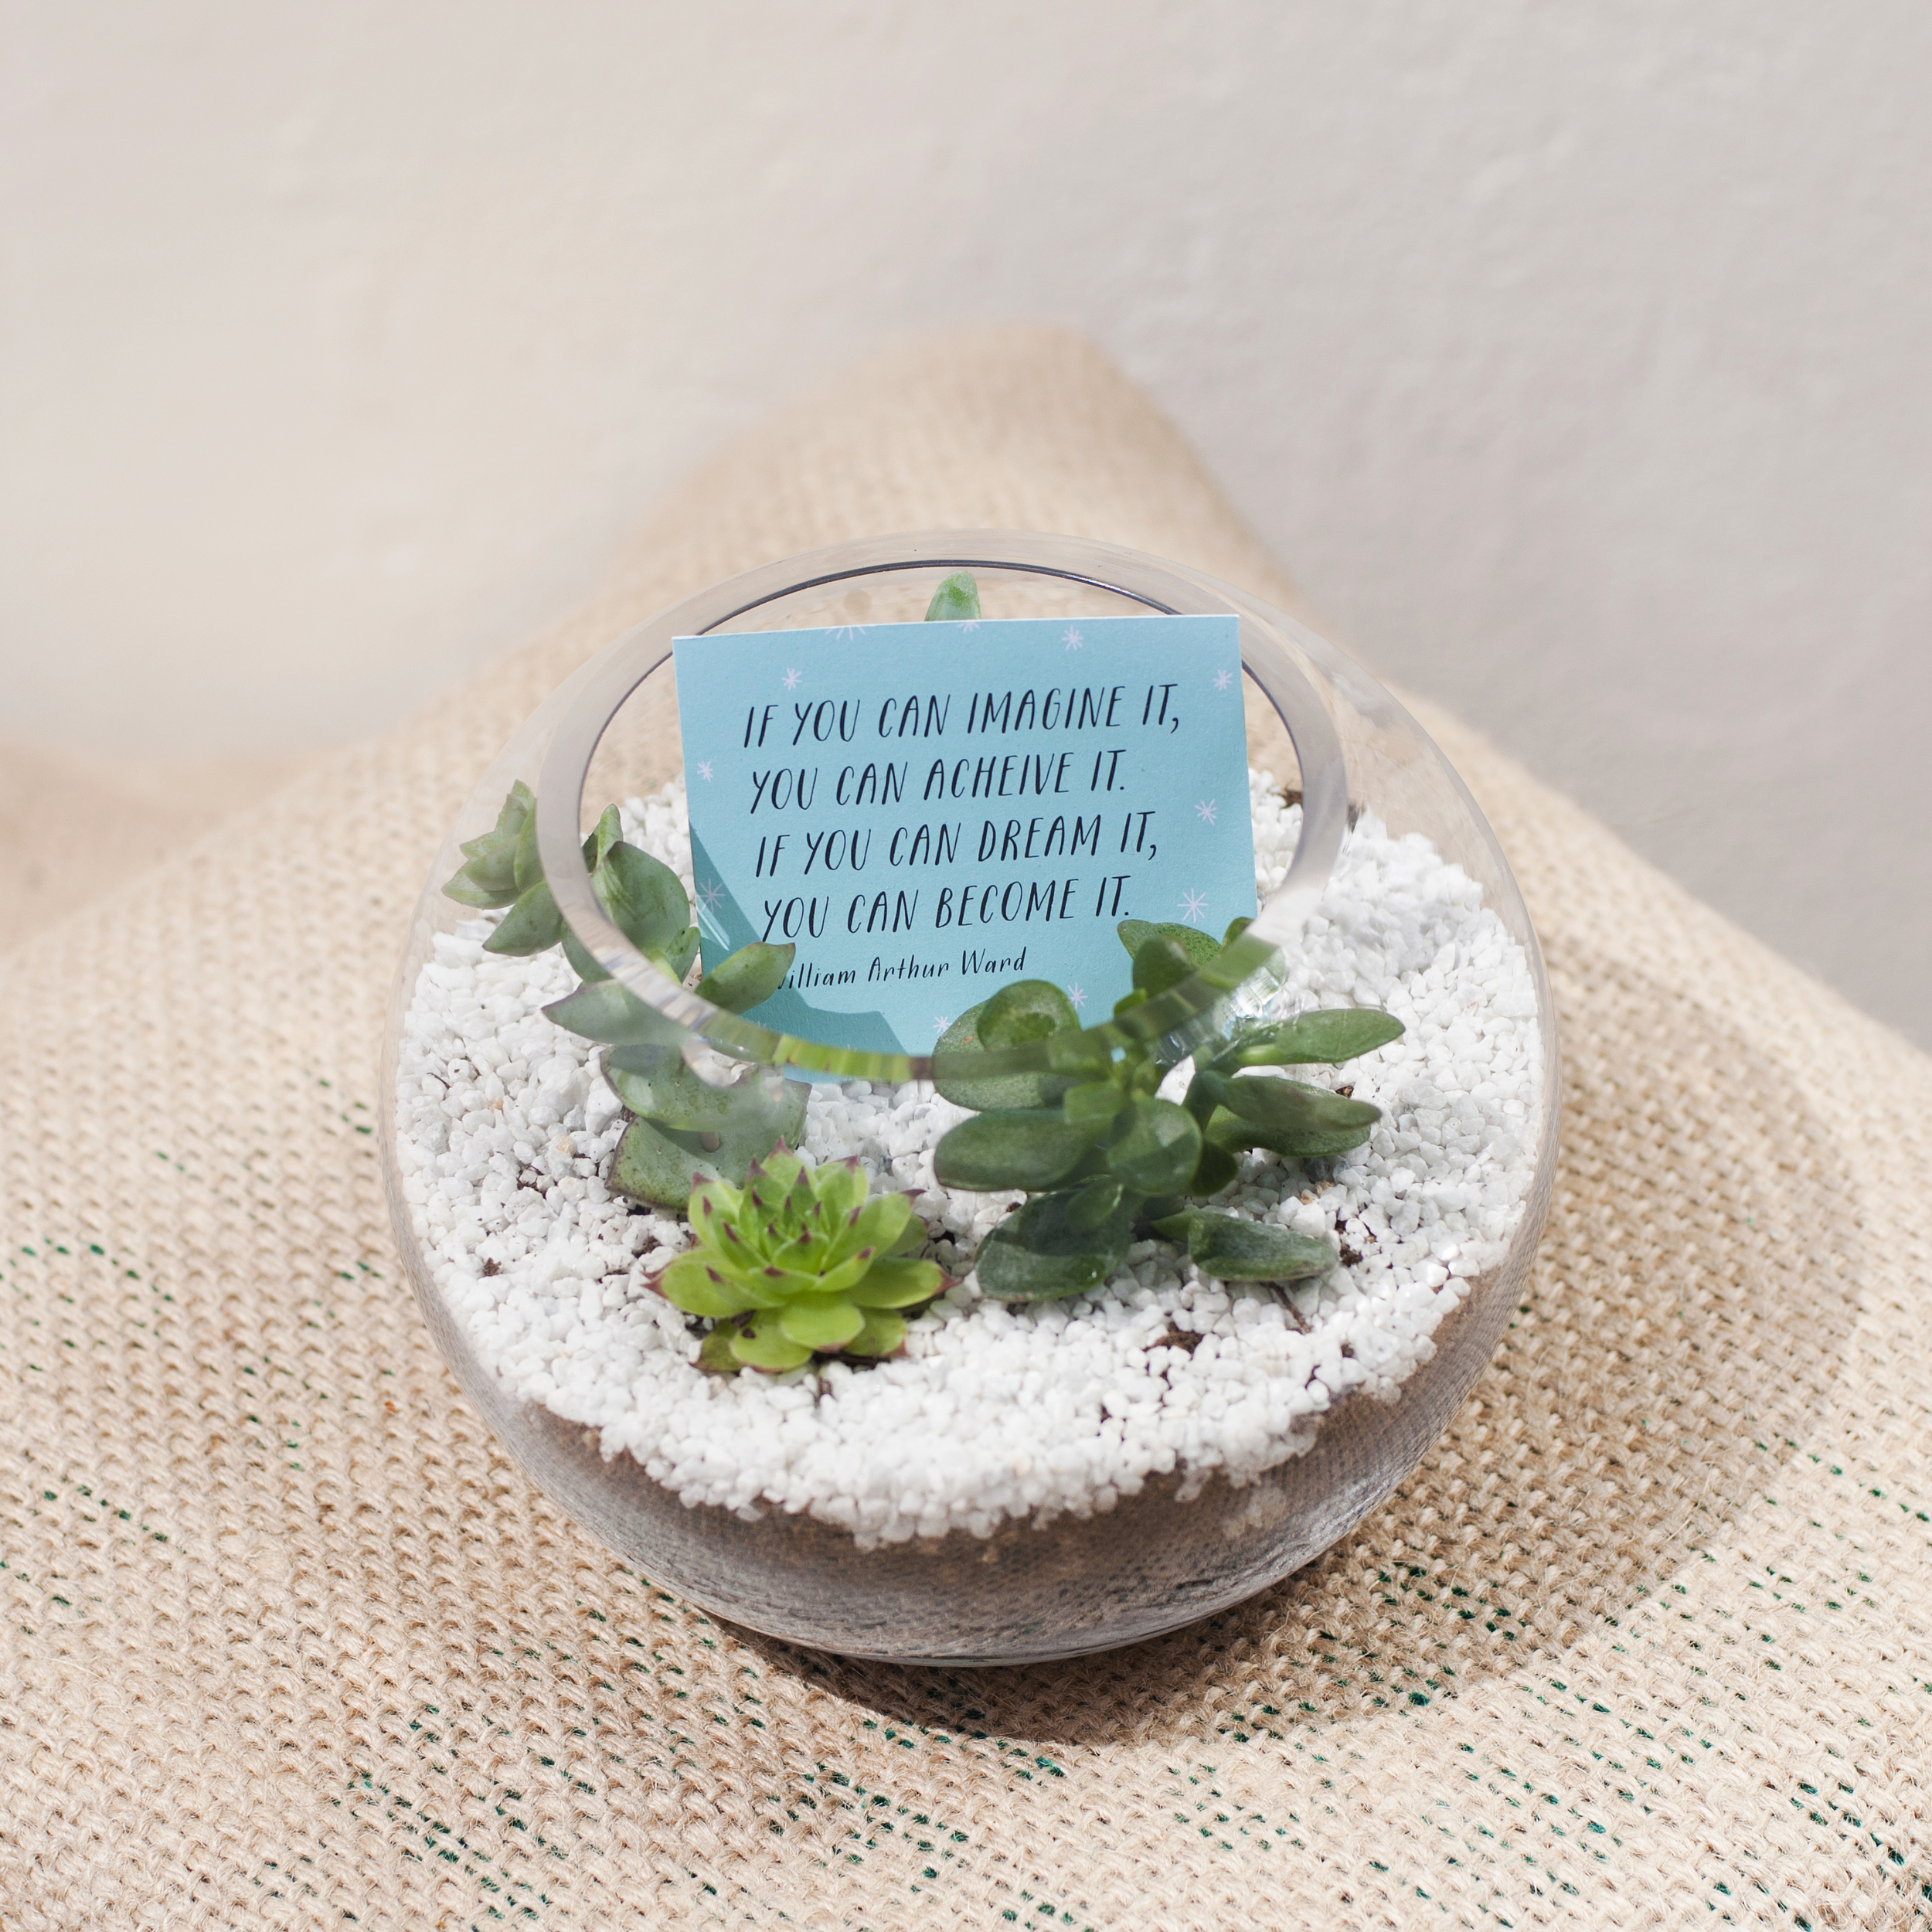 INSPIRE ME  Be inspired by our terrariums with wise words of inspiration.  If ever you need that pick me up, all you need to do is take a look at our inspirational terrariums.  They make awesome desk or mantlepiece buddies and measure approx 15.5cm wide and 12 cm tall.  $25